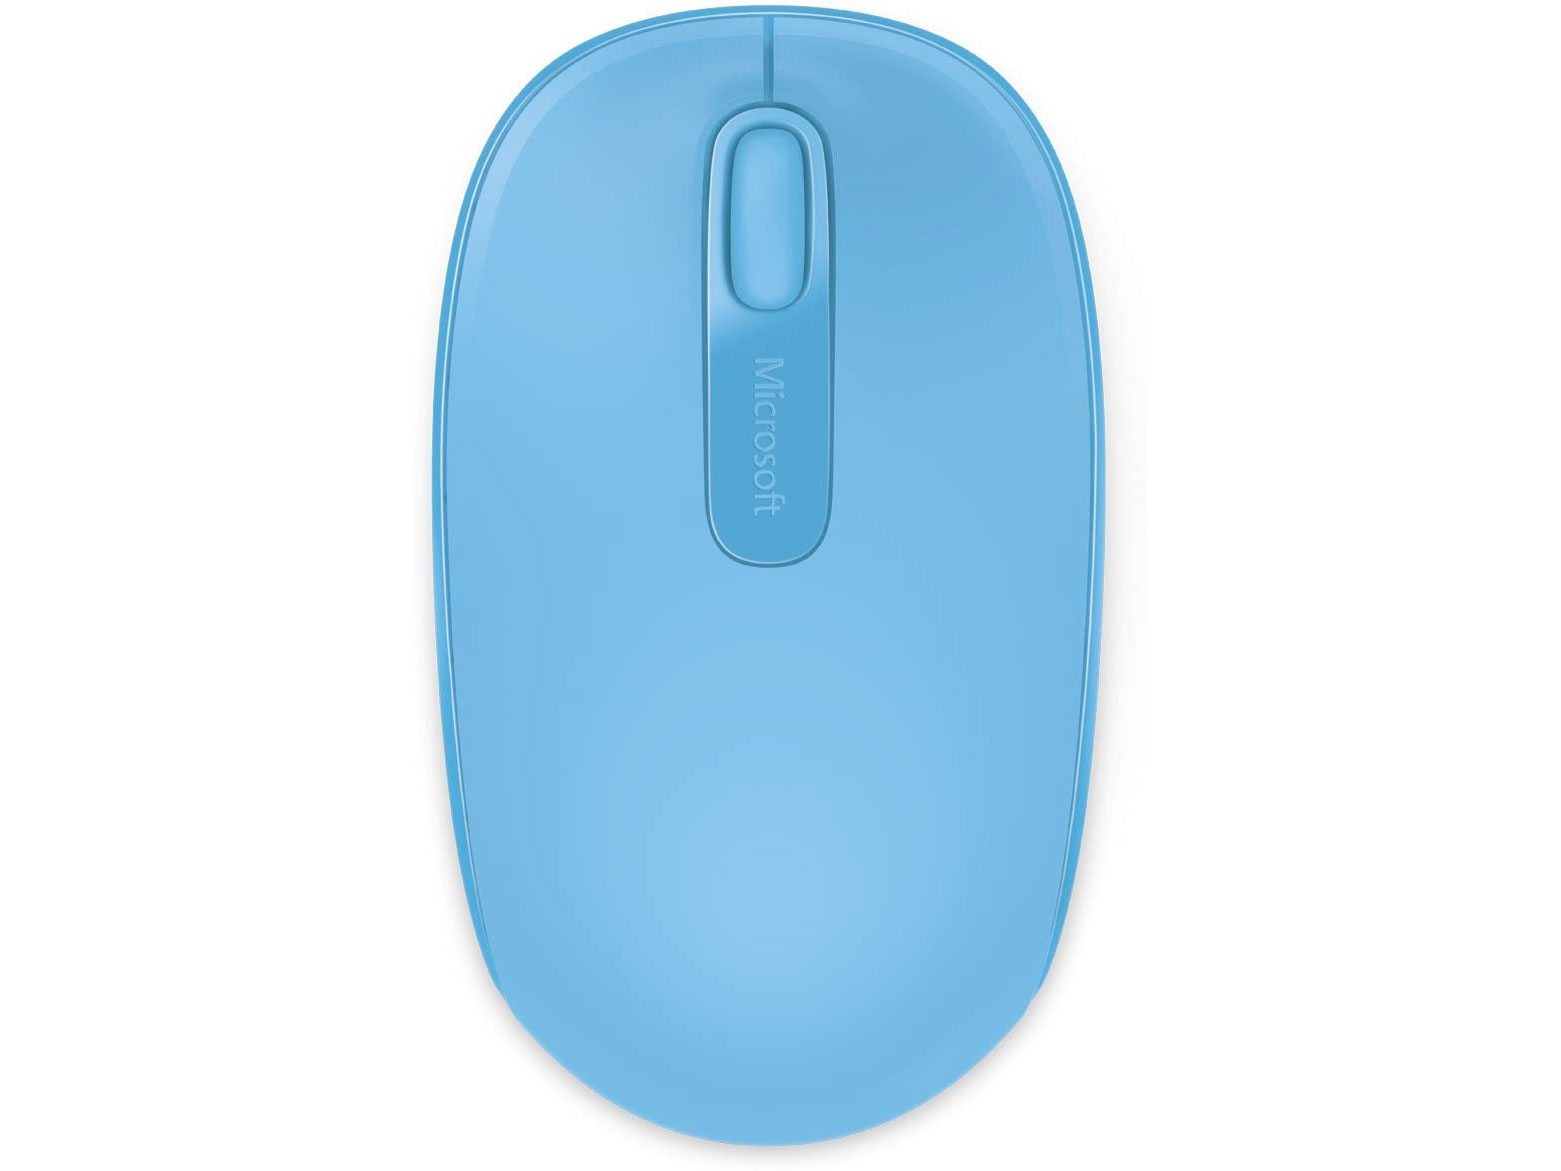 Amazon: Microsoft Wireless Mobile Mouse只賣$9.95